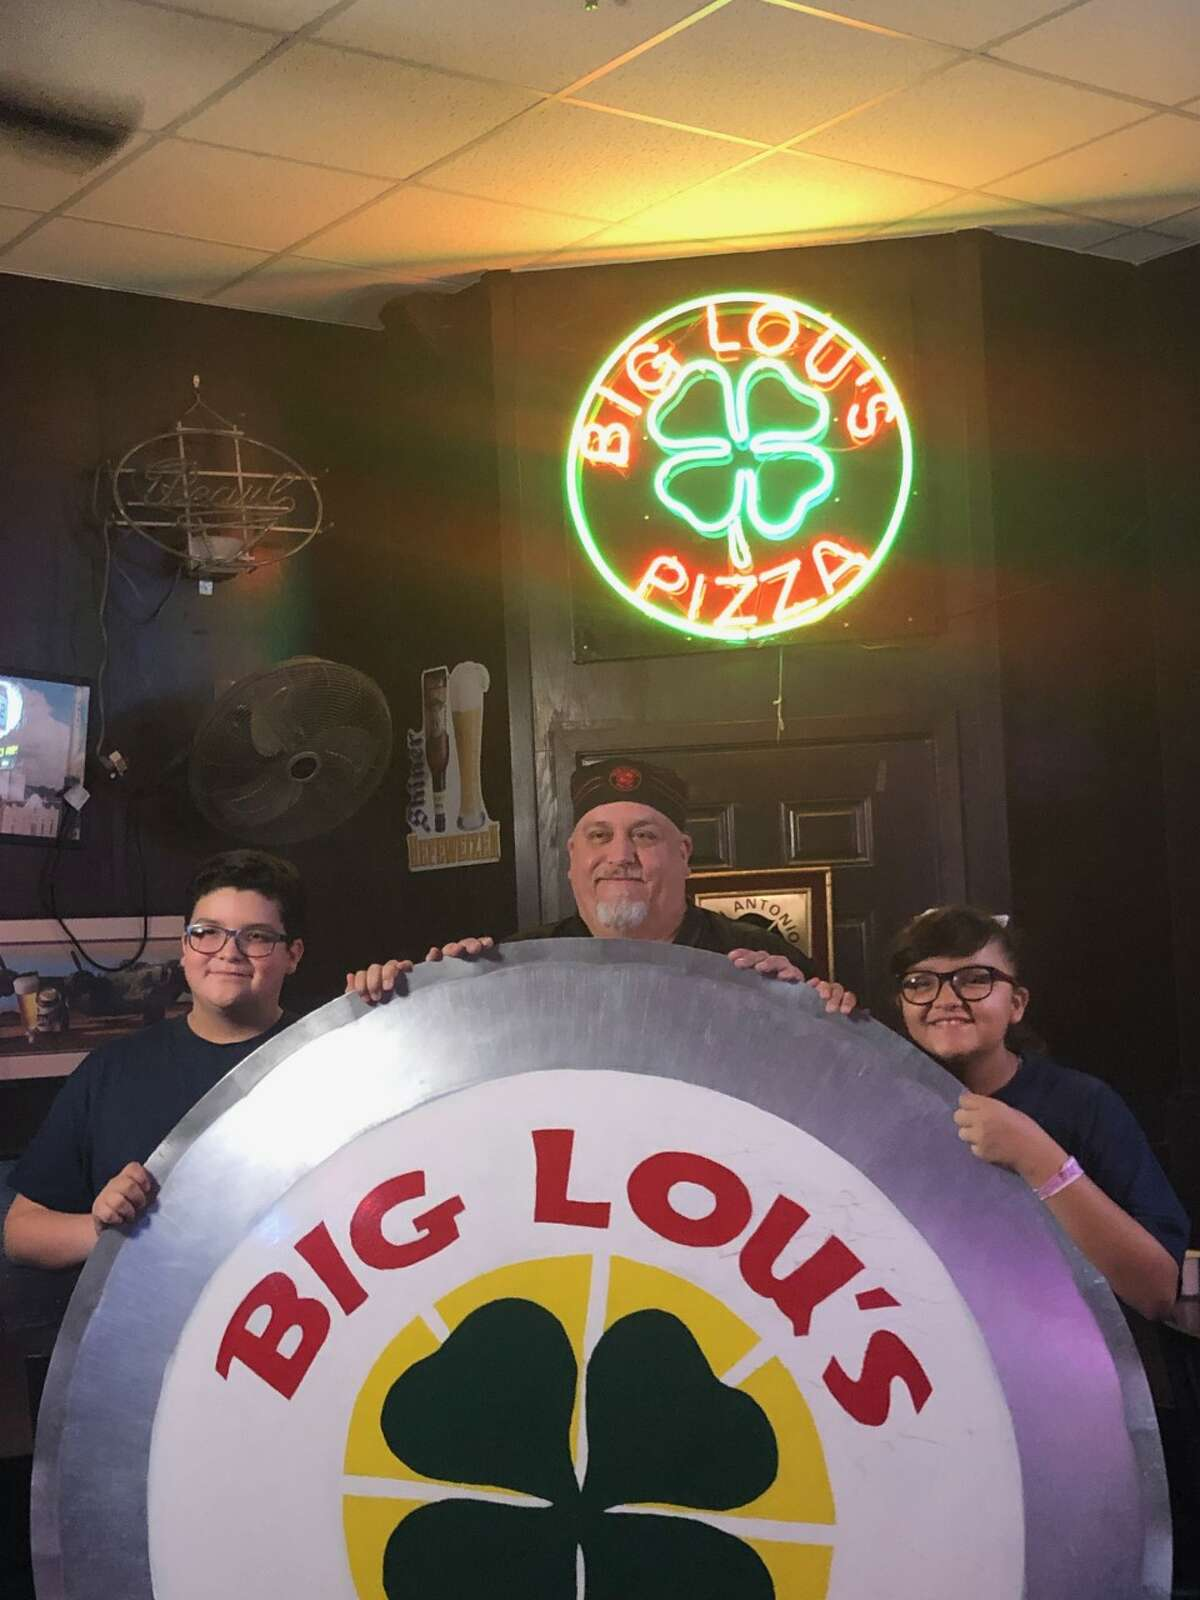 Big Lou's Pizza owner Brian Lujan said the 20-year-old restaurant has